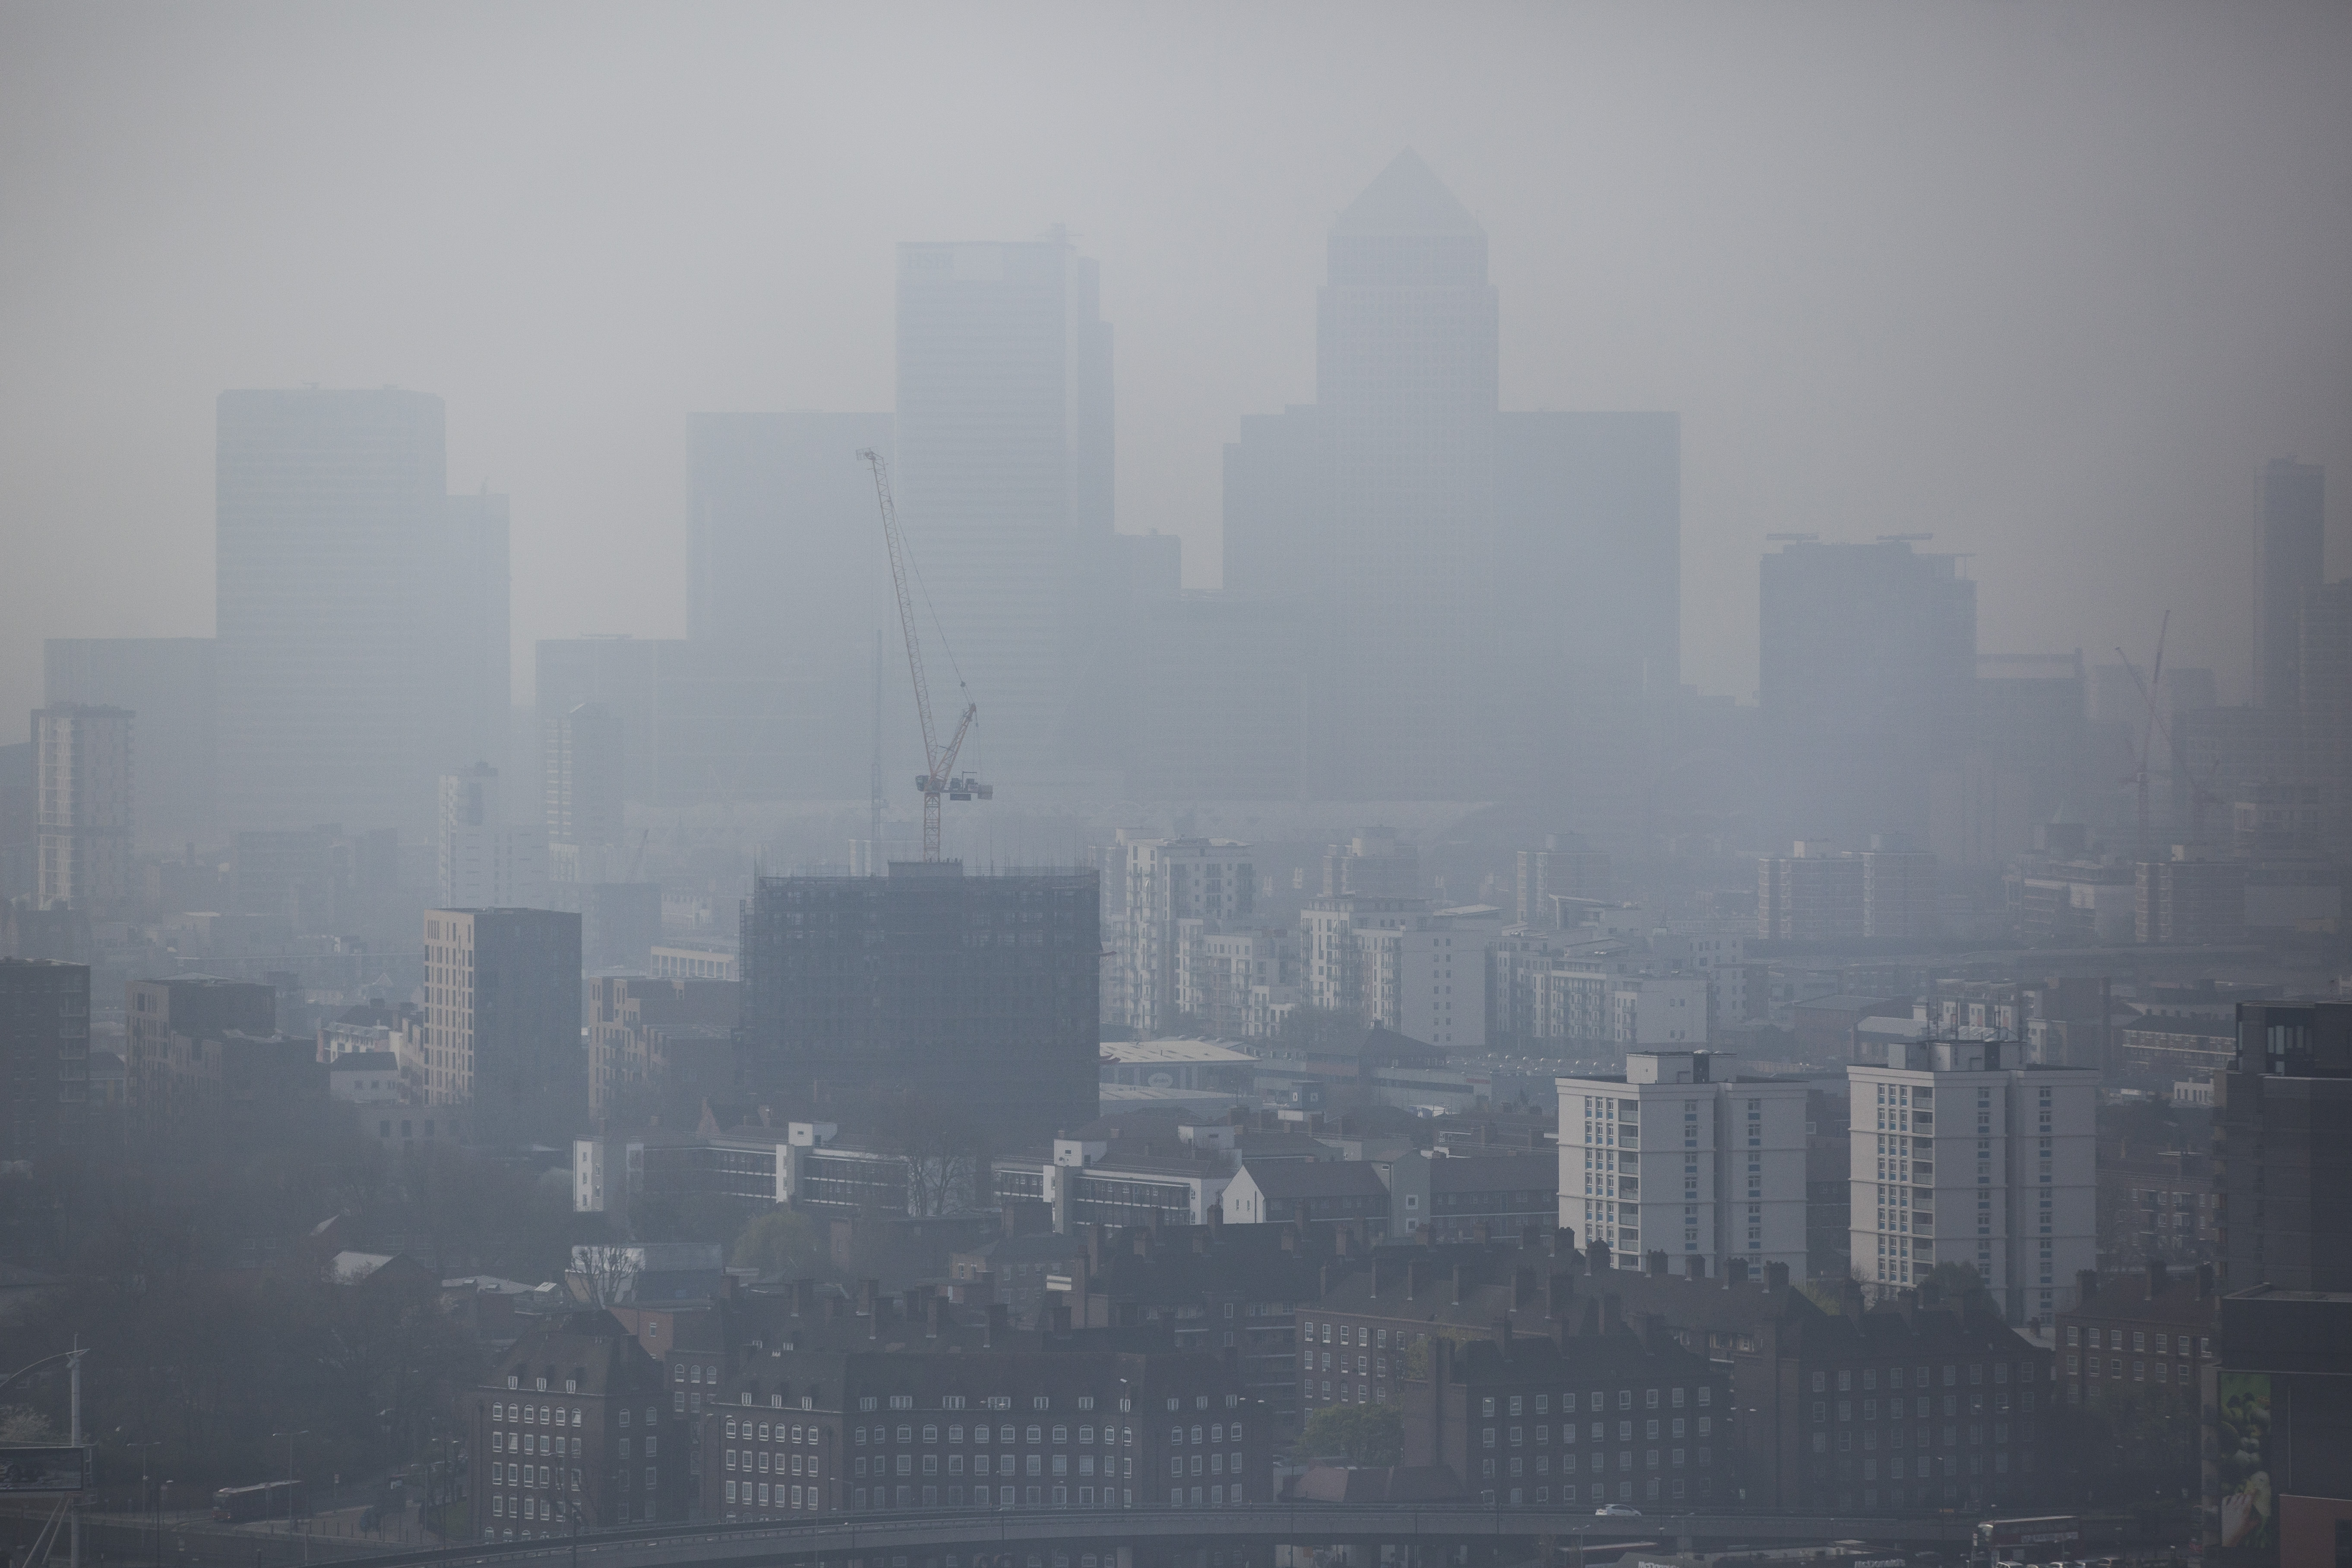 A general view through smog of the Canary Wharf financial district on April 2, 2014 in London, England.